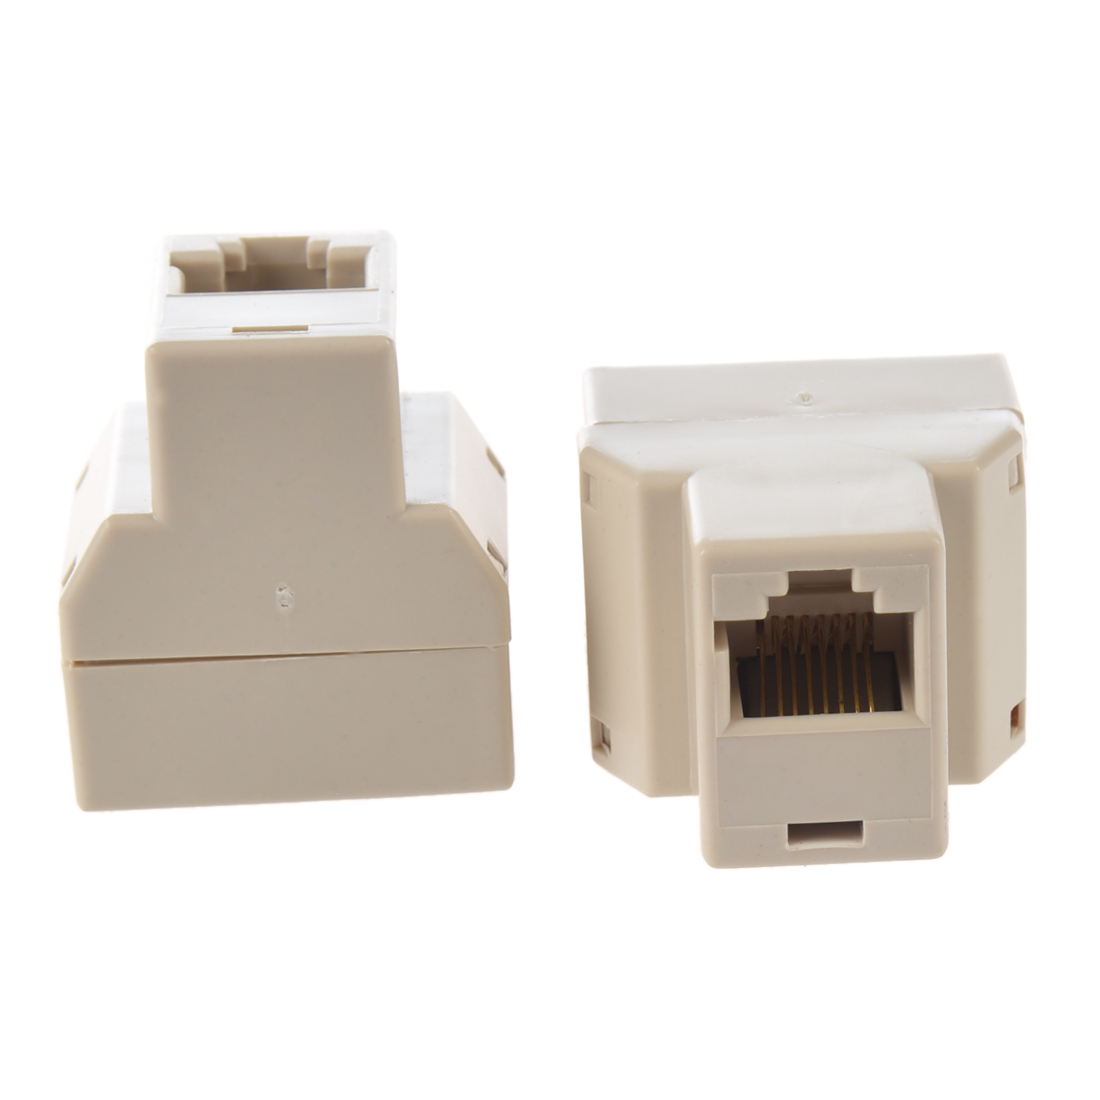 2 Pcs 3 Way RJ45 LAN Network Ethernet Splitter Connector Khaki